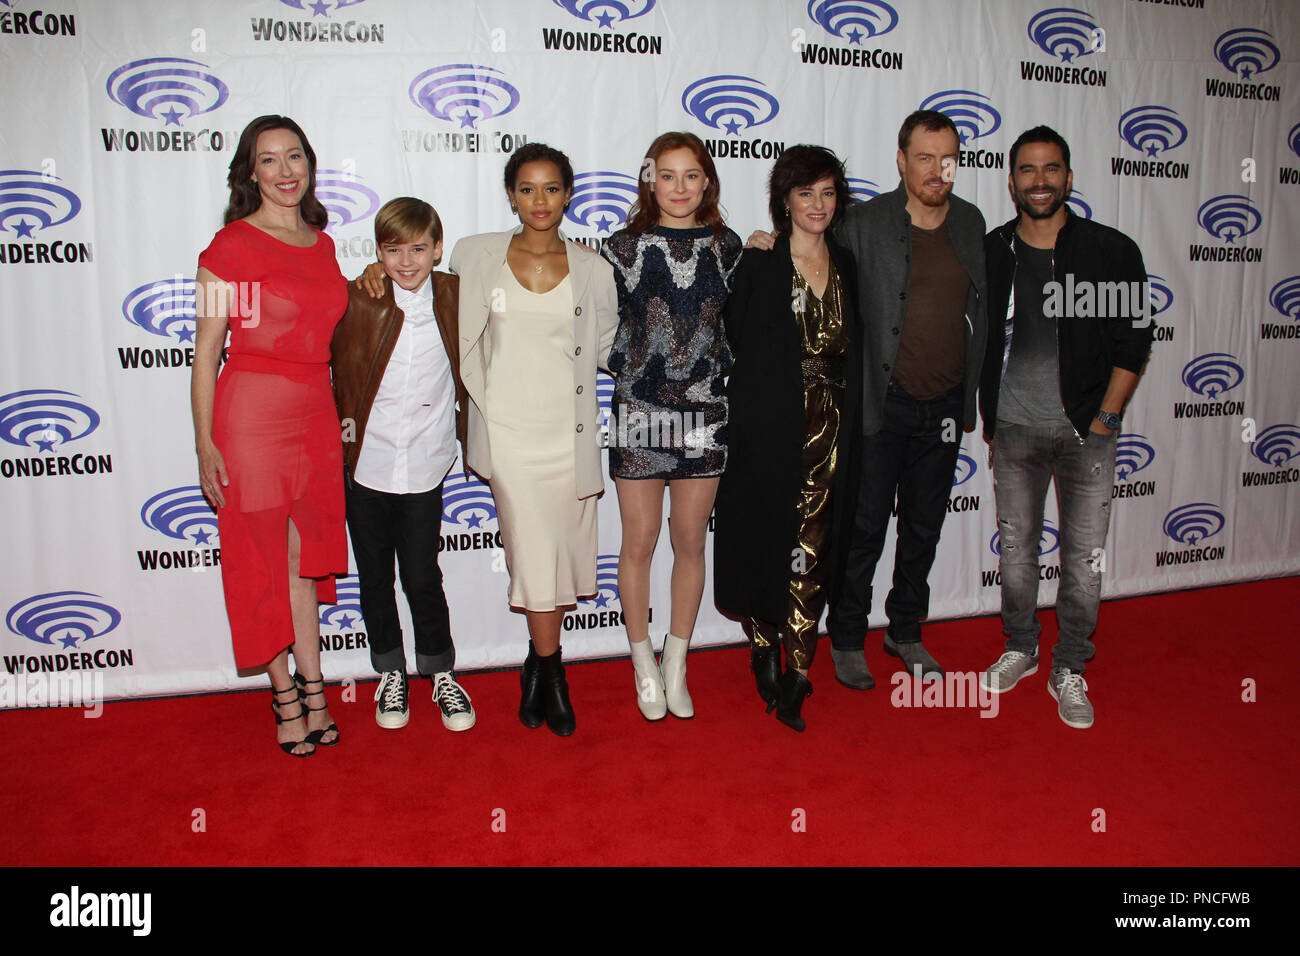 Molly Parker, Max Jenkins, Taylor Russell, Mina Sundwall, Parker Posey, Toby Stephens and Ignacio Serricchio promoting Netflix Original Series 'Lost In Space' at Day 2 of WonderCon Anaheim 2018. Held at the Anaheim Convention Center in Anaheim, CA. March 23 2018. Photo by: Richard Chavez / PictureLux - Stock Image